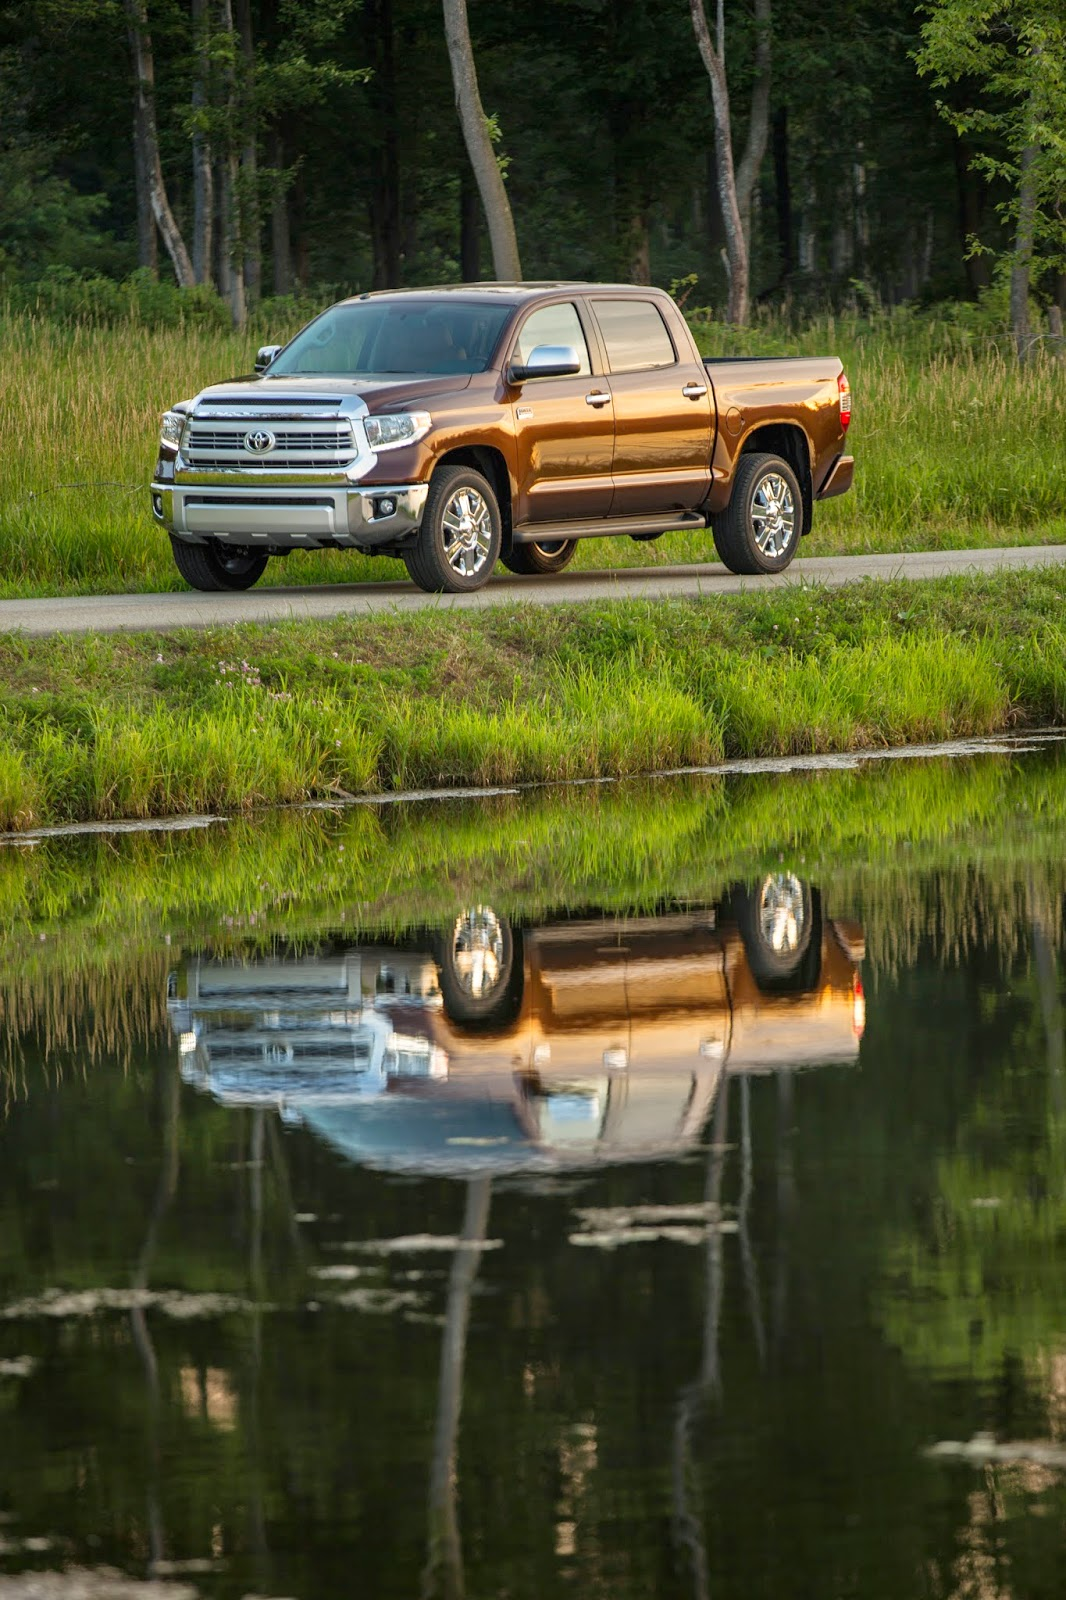 Front 3/4 view of 2014 Toyota Tundra CrewMax 1794 and its reflection in a pond